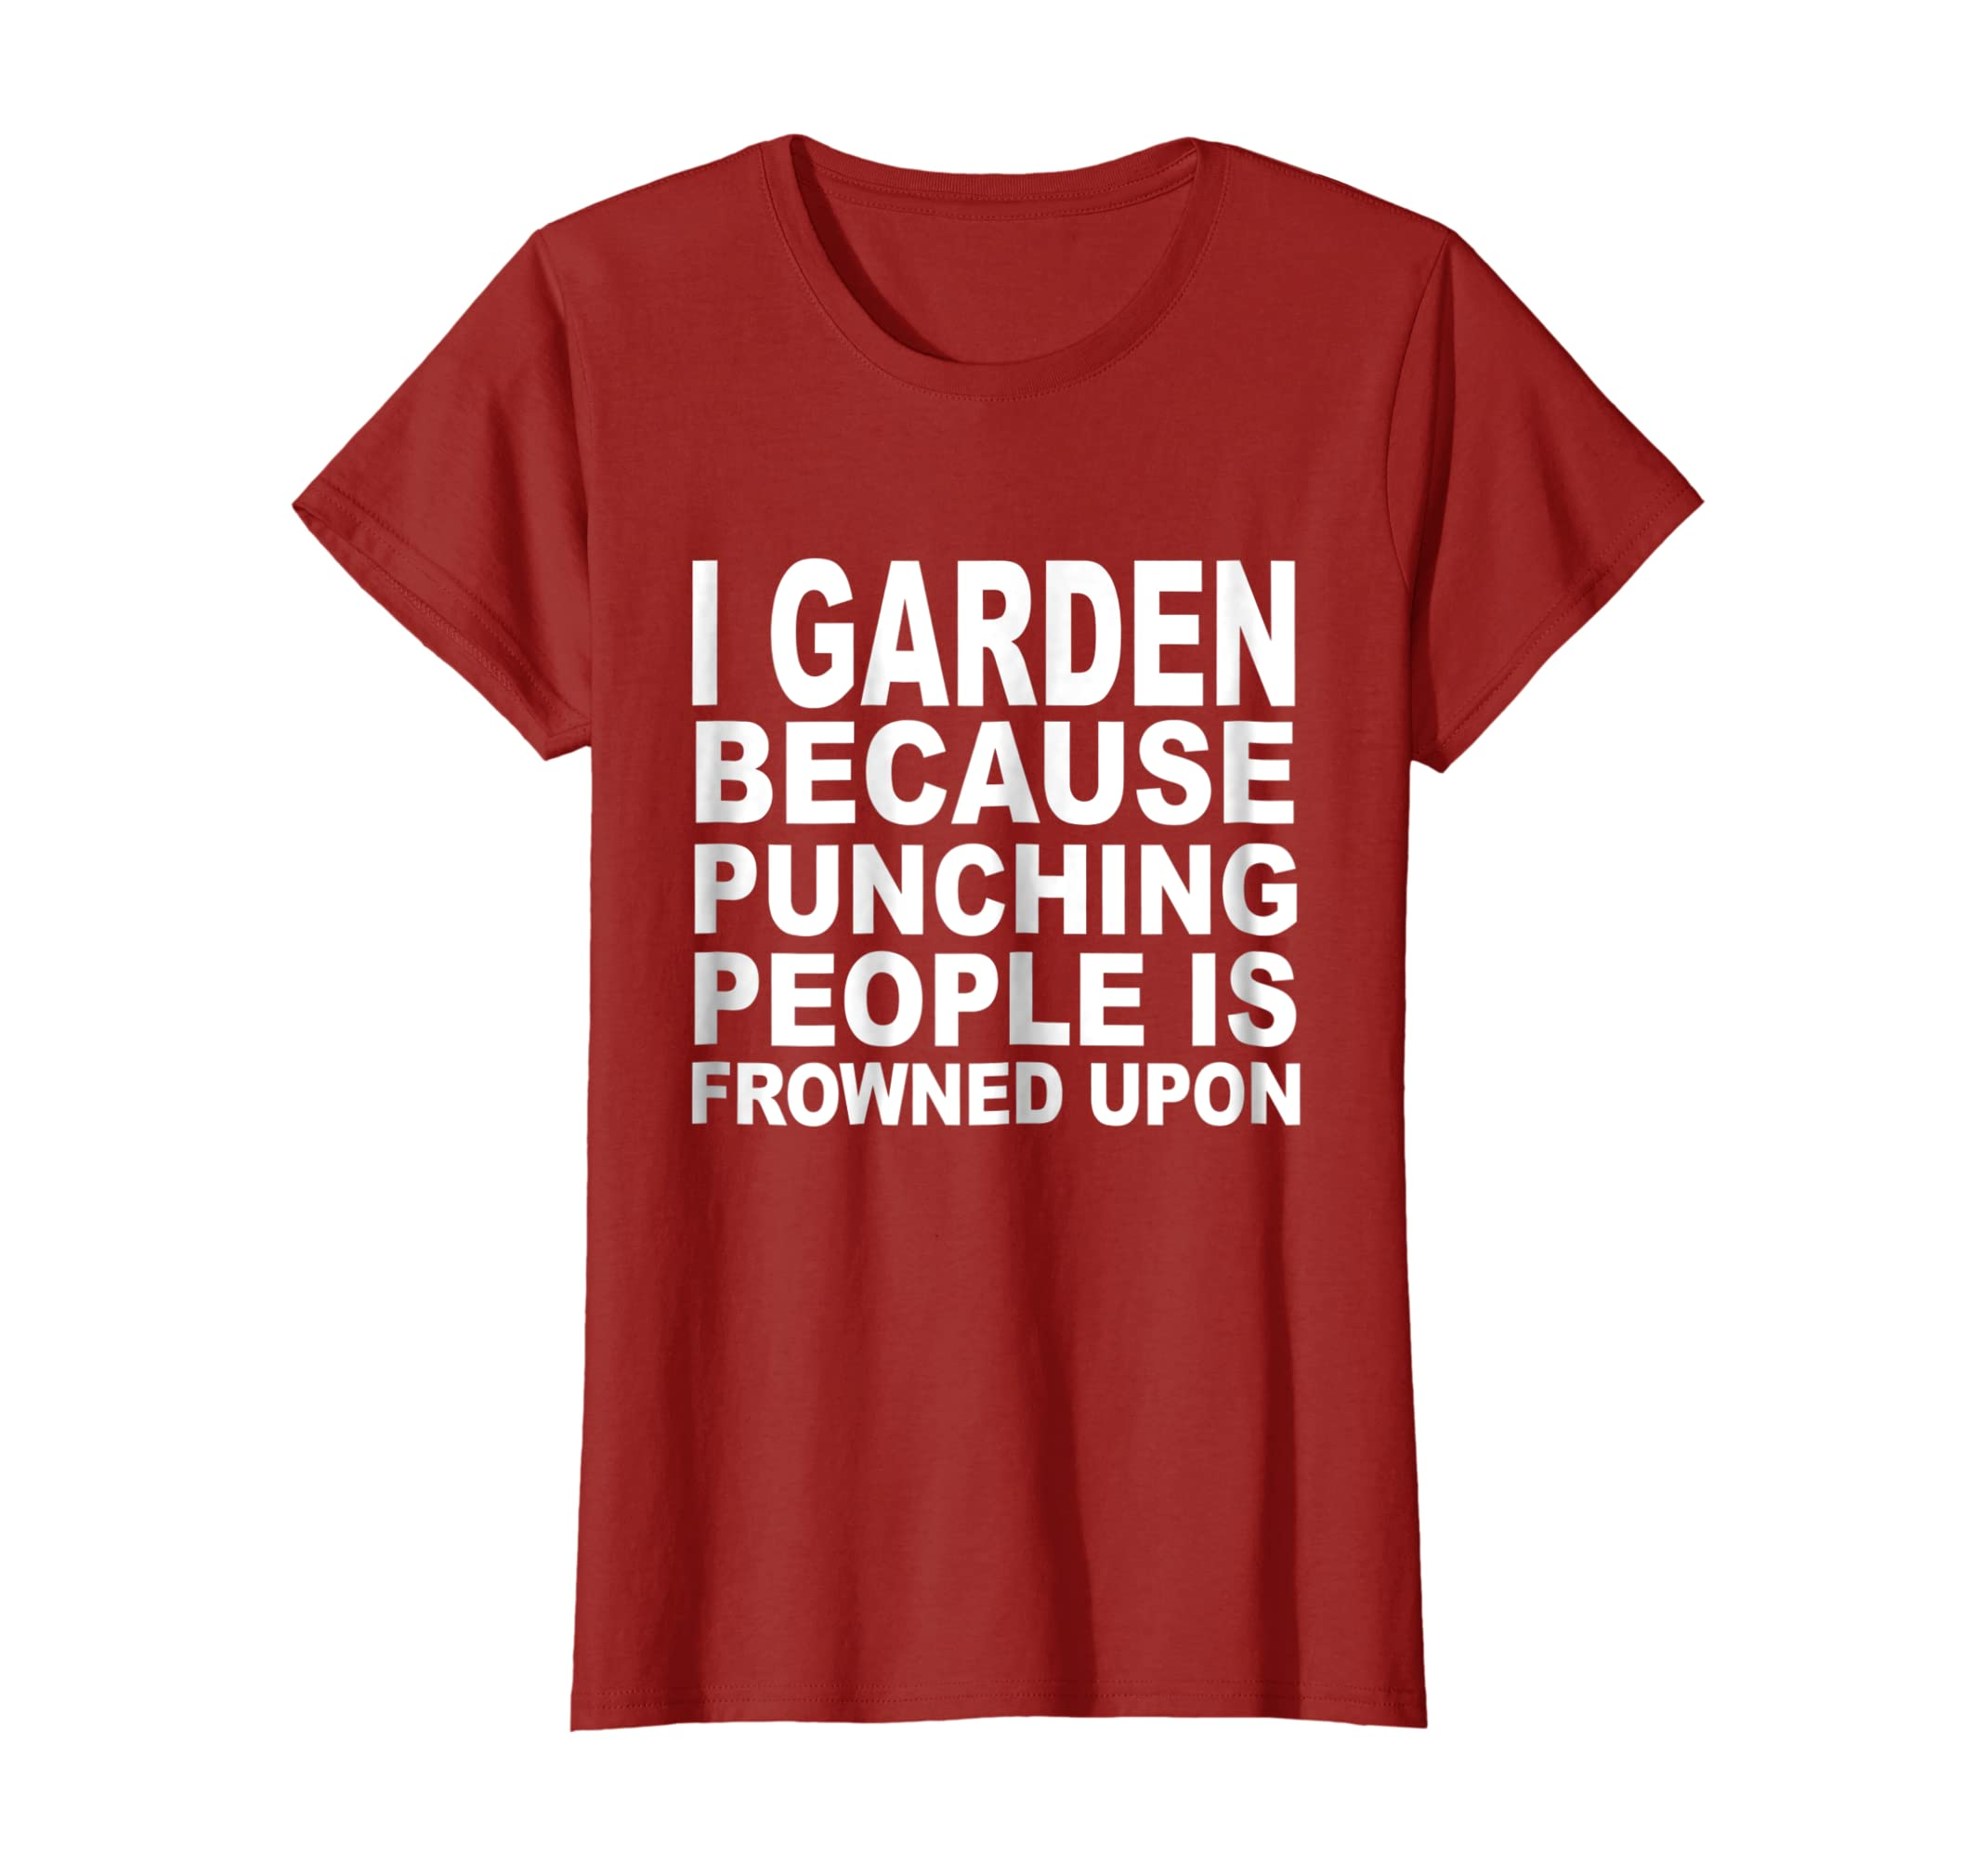 f0cb2949 Amazon.com: I Garden Because Punching People Is Frowned Upon T-Shirt:  Clothing